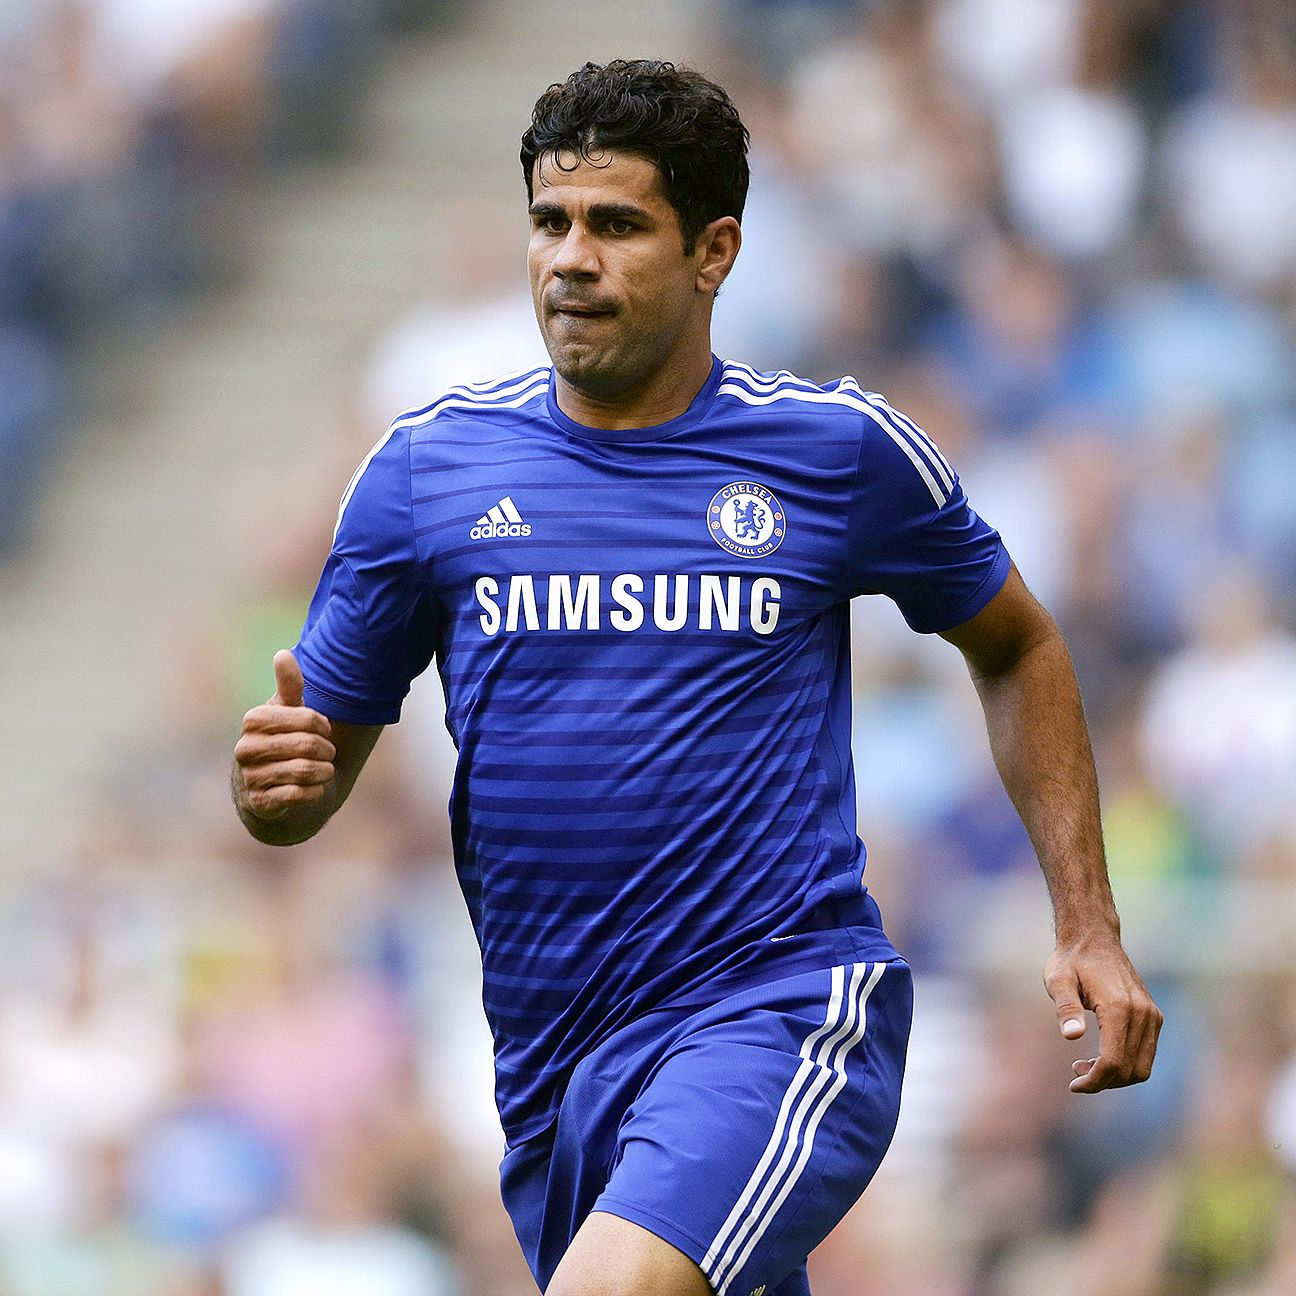 Diego Costa's work rate in his first weeks with Chelsea has drawn positive reviews.